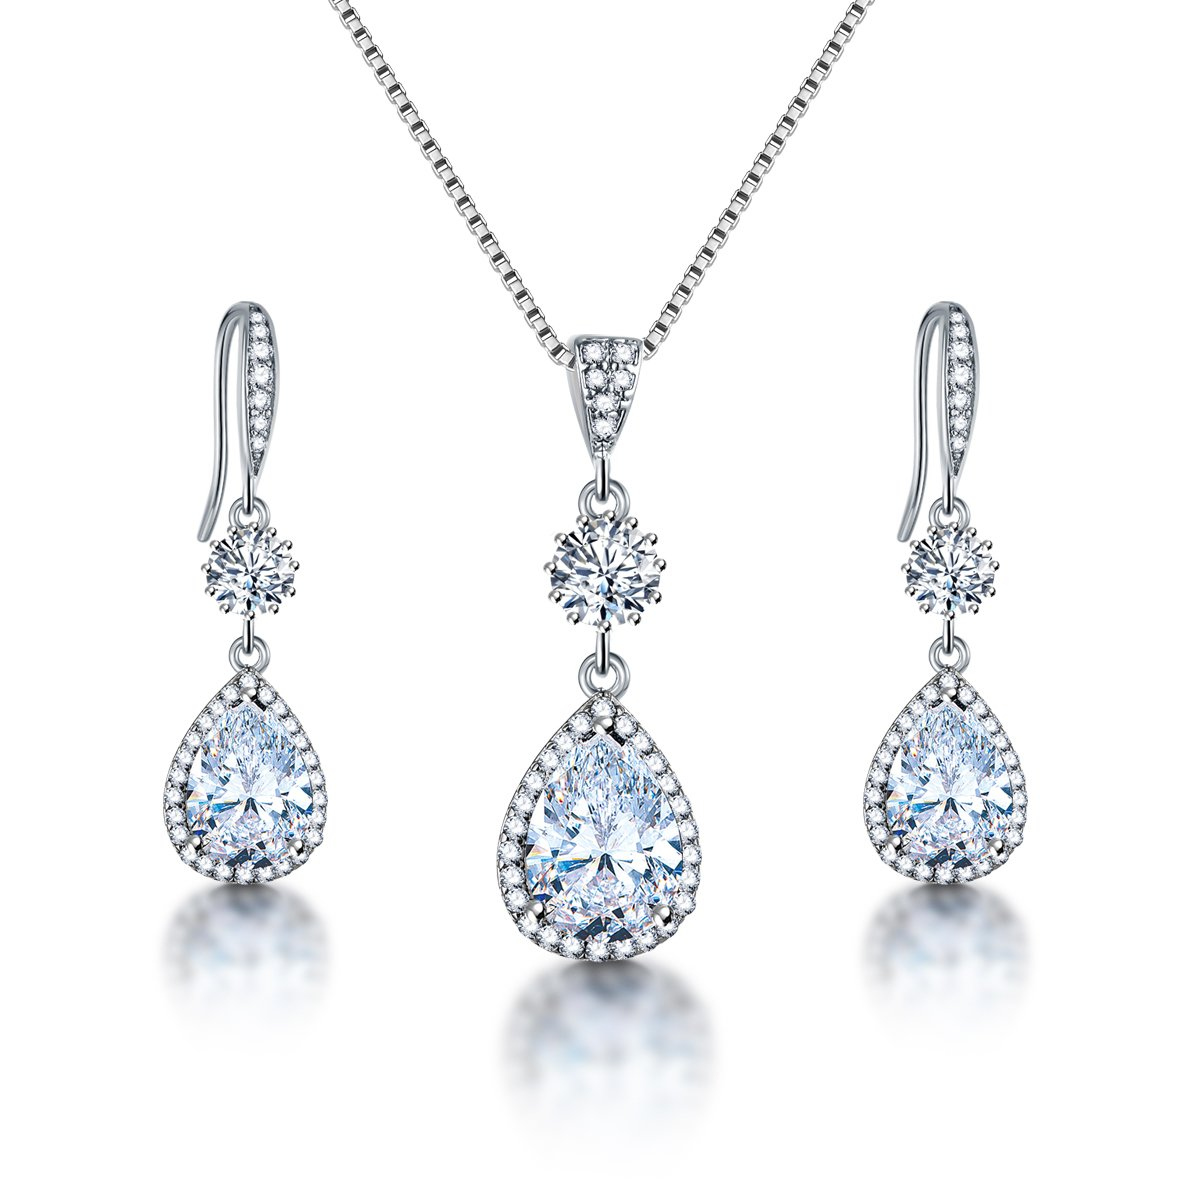 04838333c AMYJANE Elegant Jewelry Set for Women - Silver Teardrop Clear Cubic  Zirconia Crystal Rhinestone Drop Earrings and Necklace Bridal Jewelry Sets  Best Gift for ...